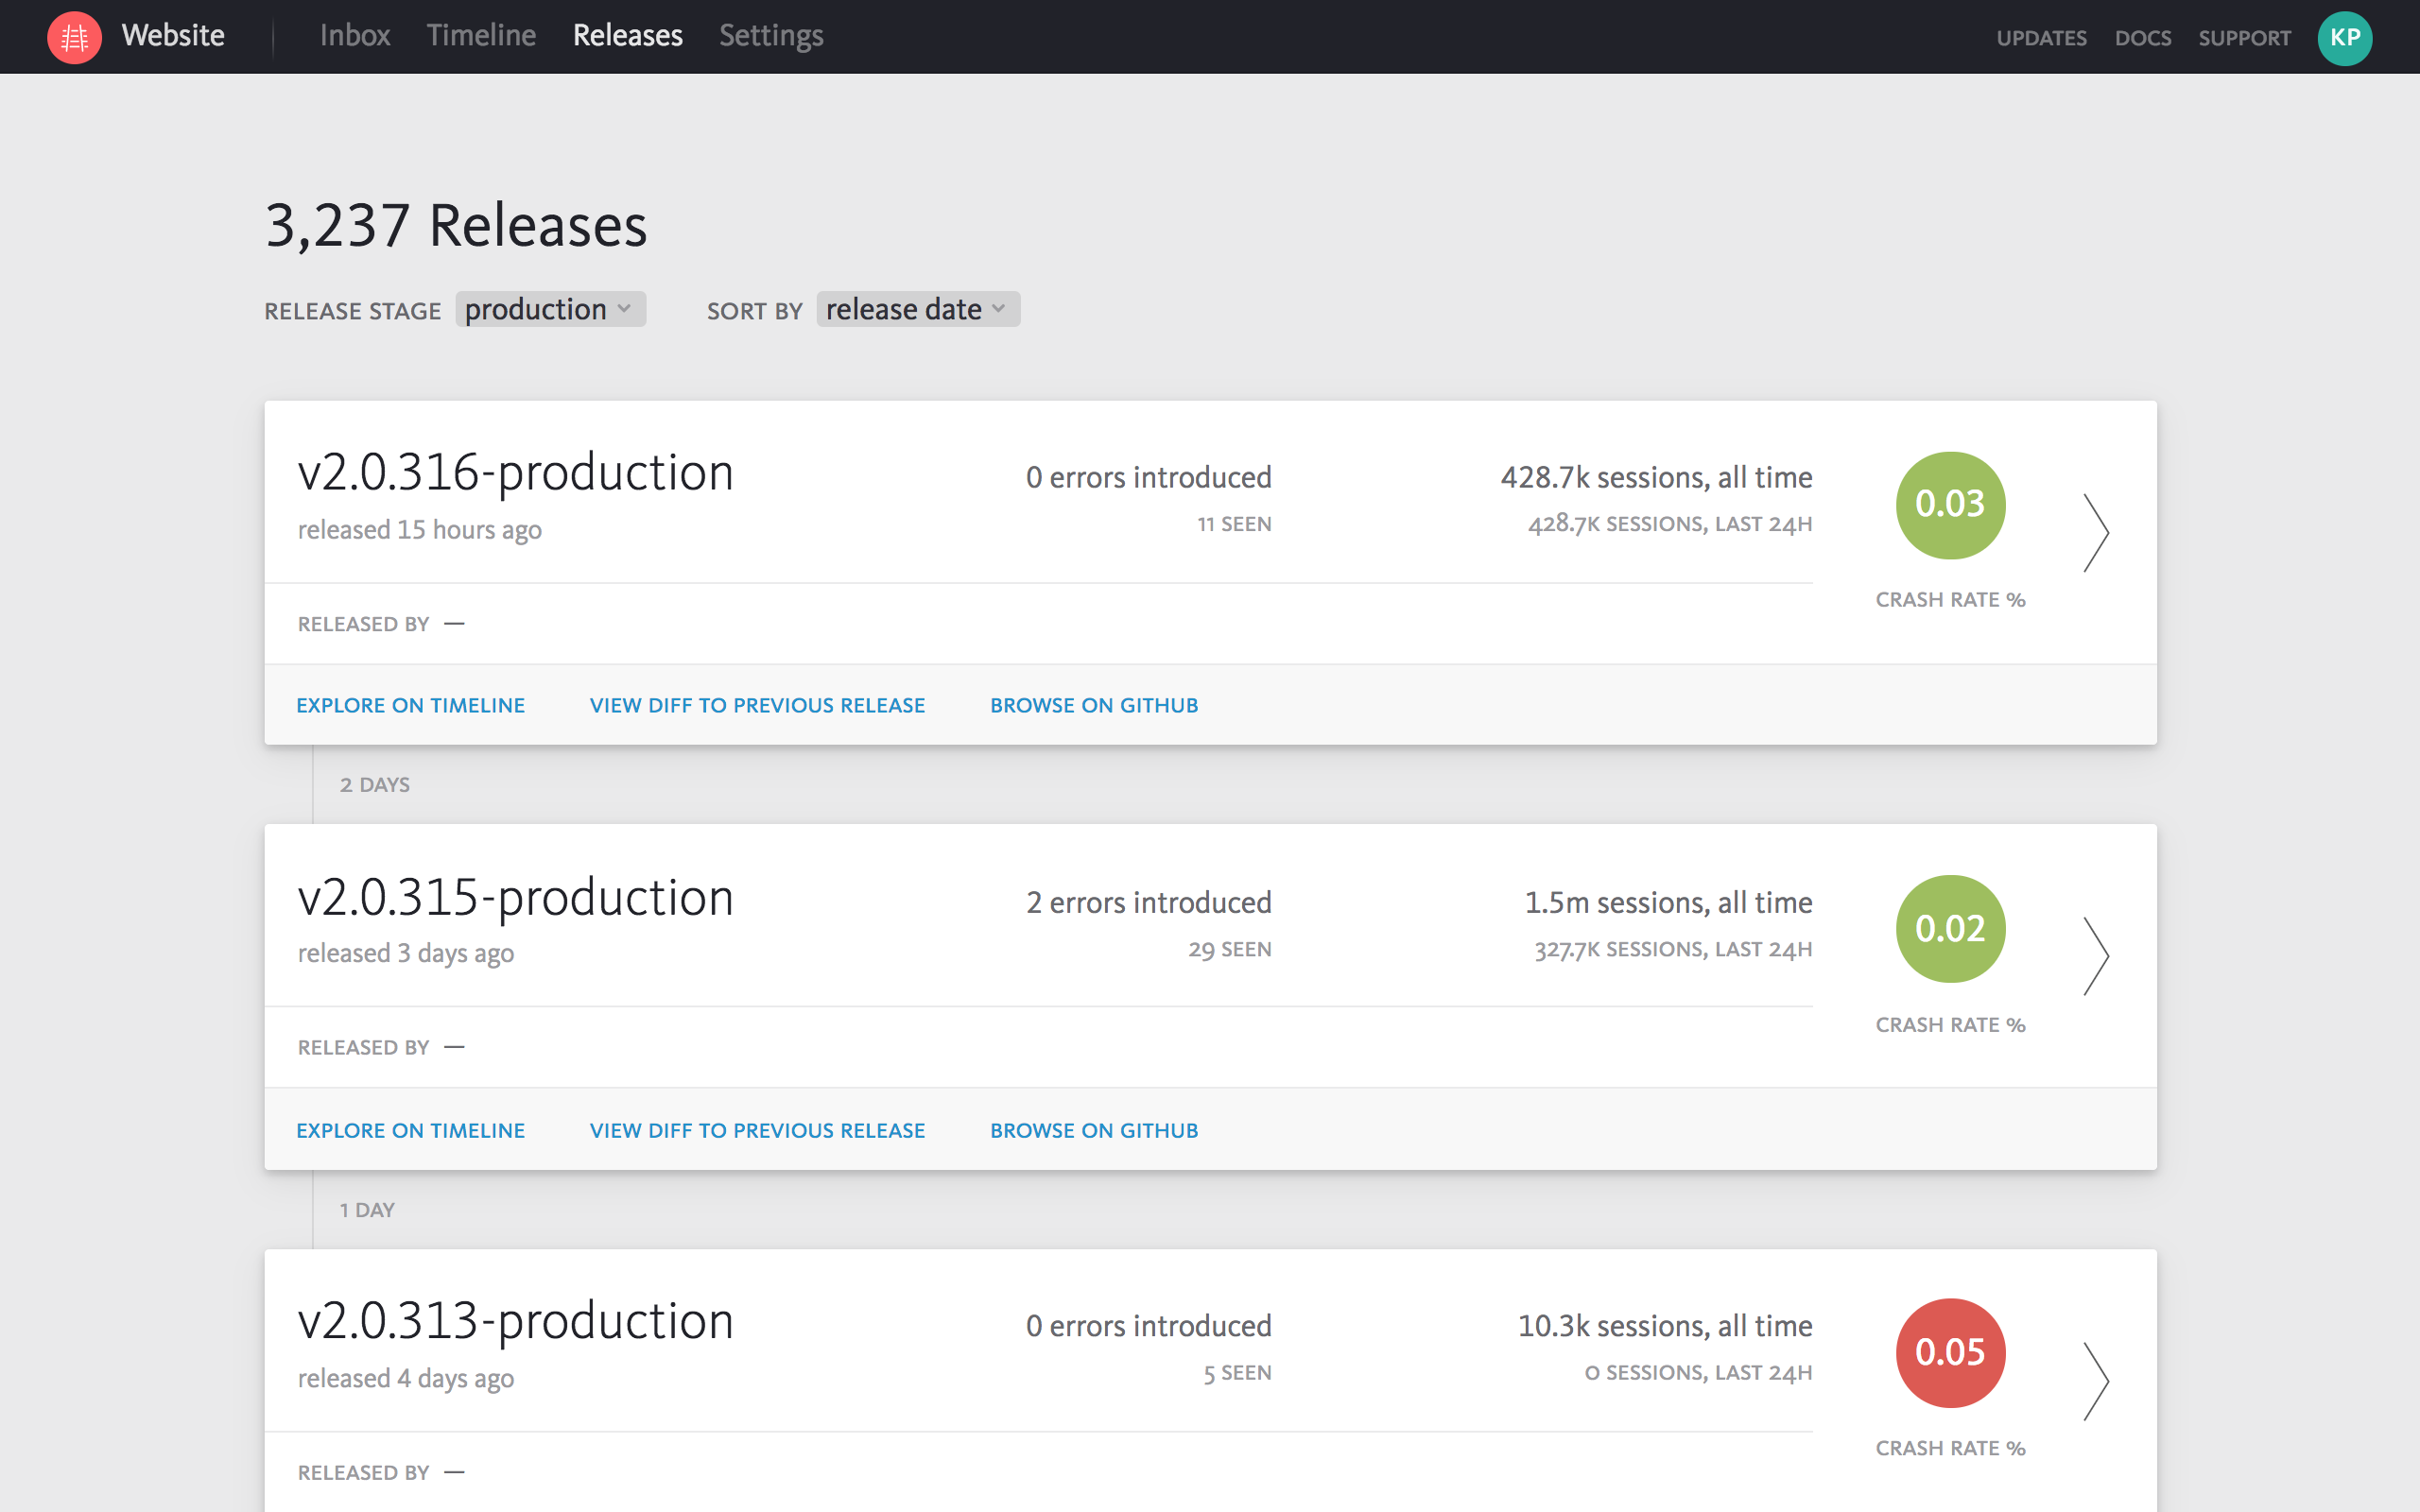 Releases dashboard in Bugsnag